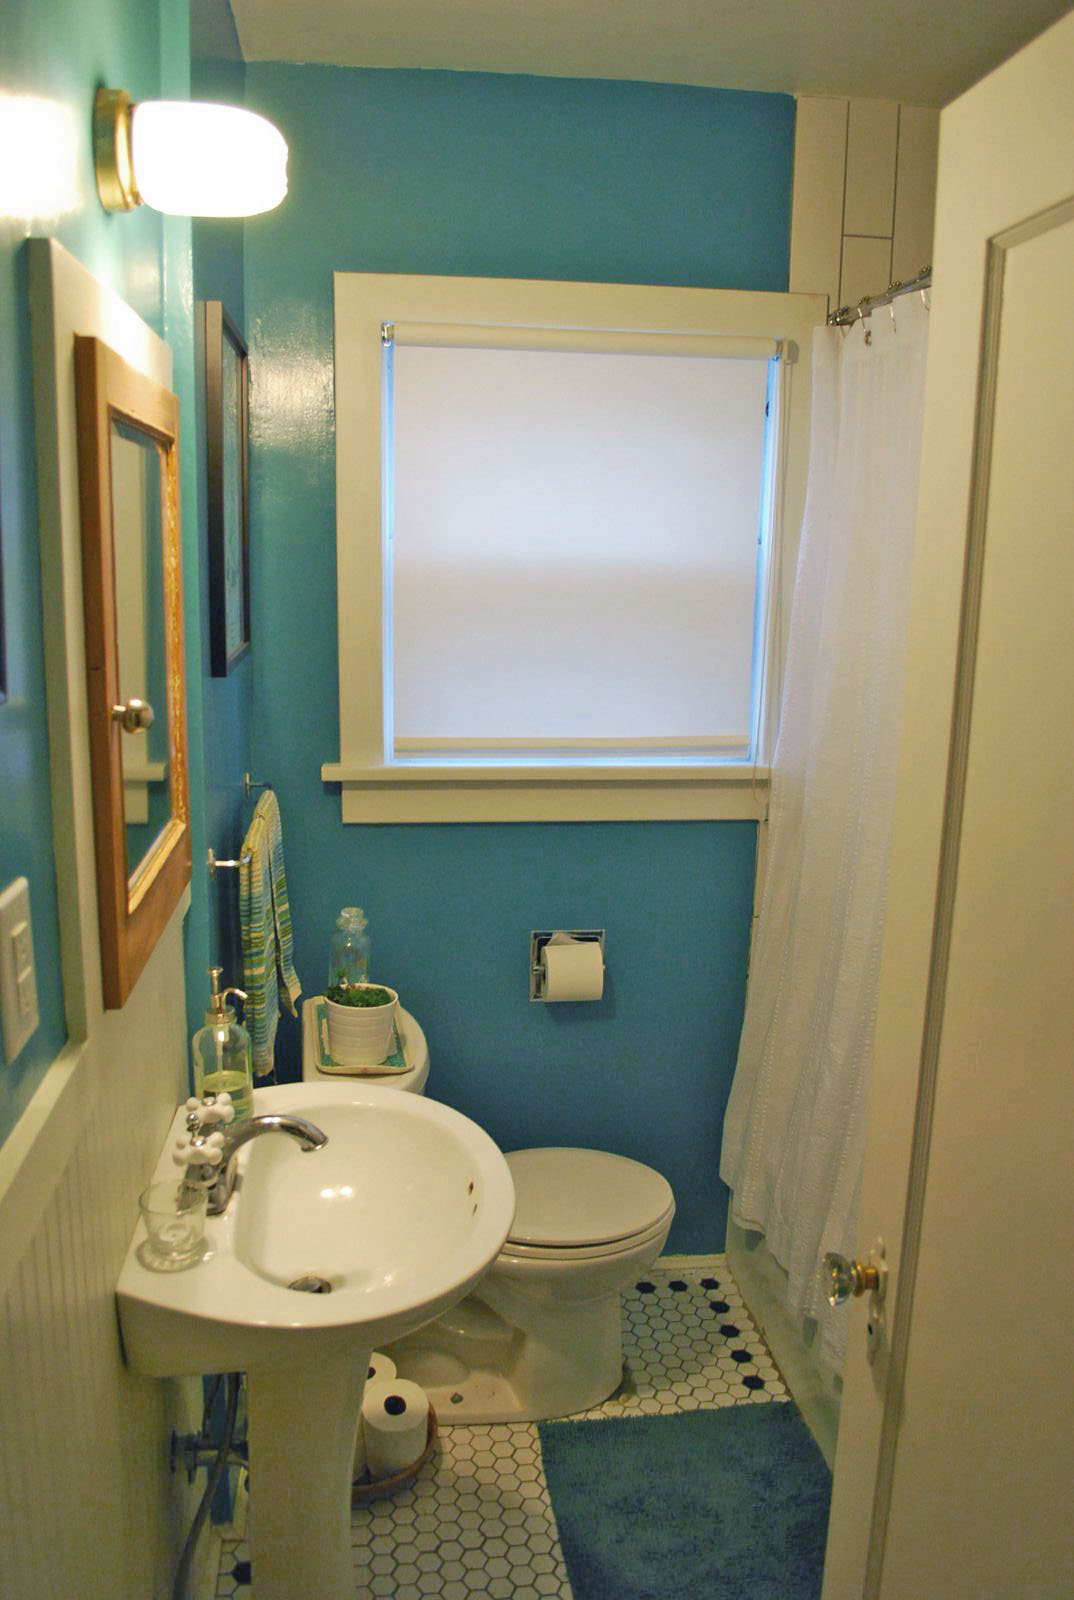 semi gloss paint bathroom. does semi gloss paint bathroom o